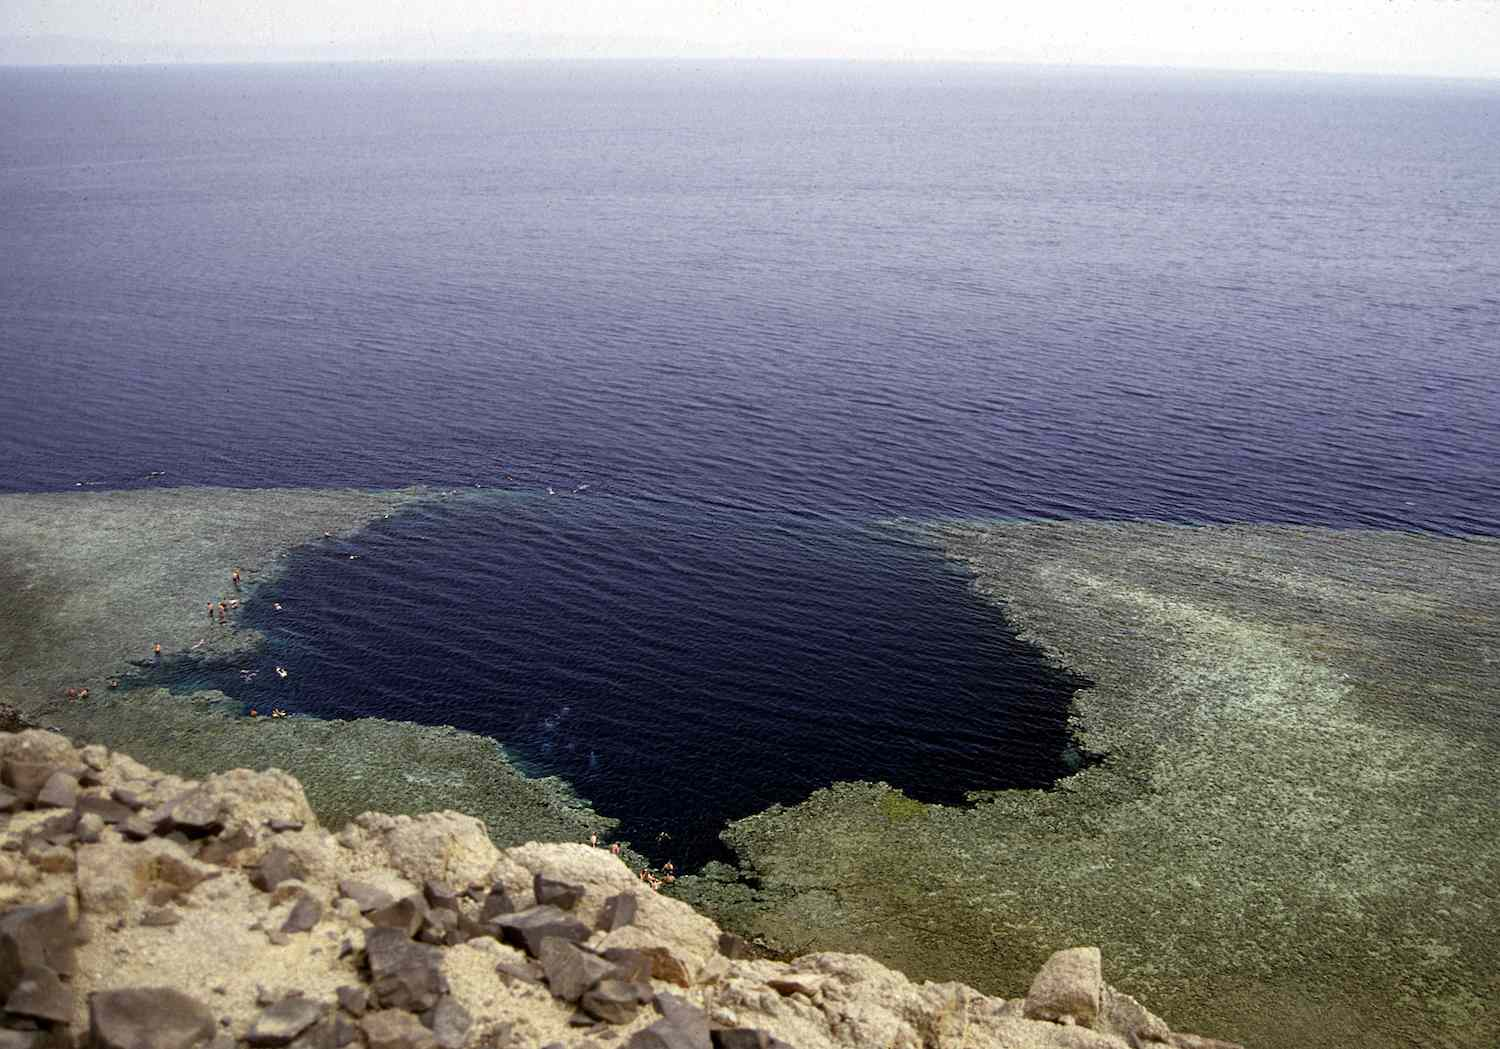 The mouth of The Blue Hole of Dahab off the shoreline of the Red Sea in Egypt